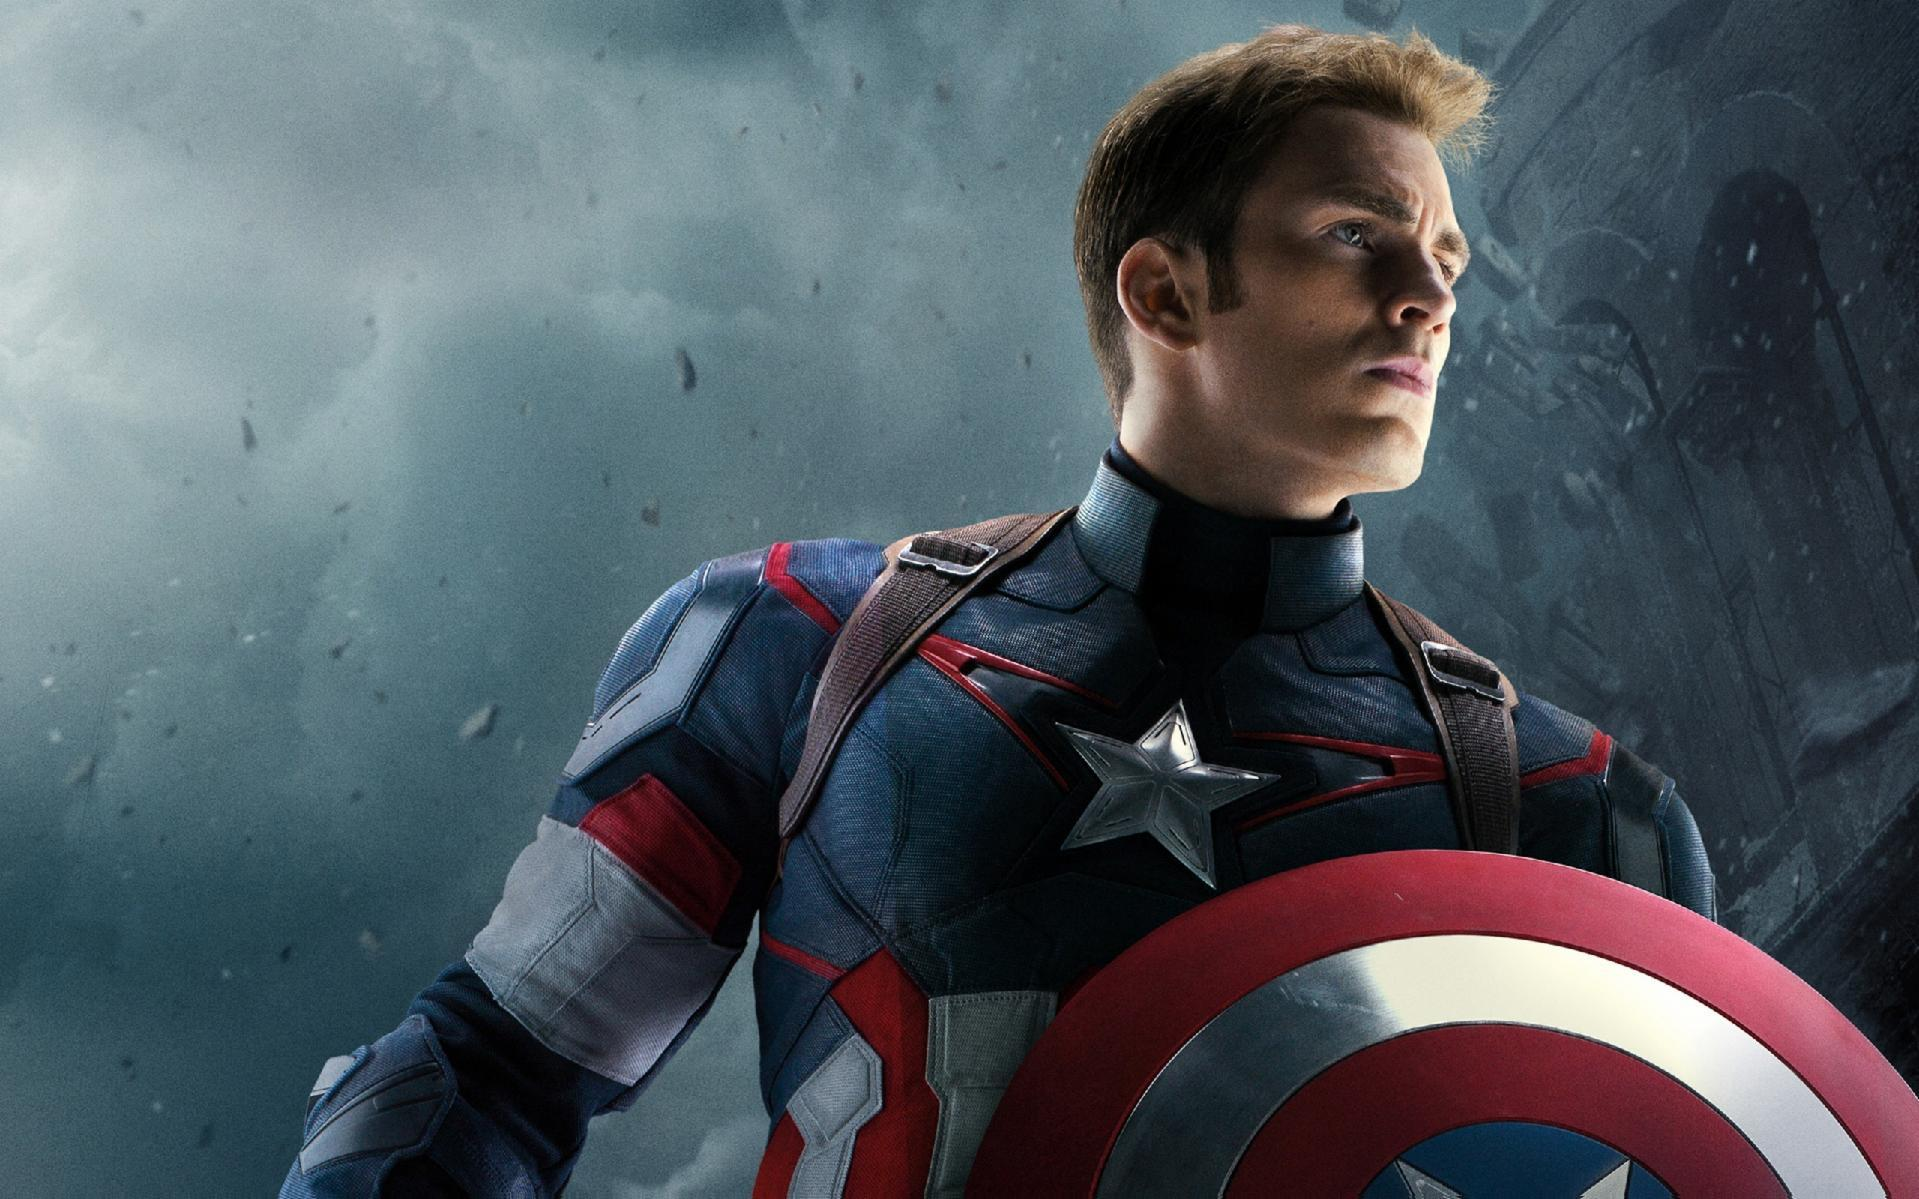 Regular Captain America ( Hero side like SHIELD)